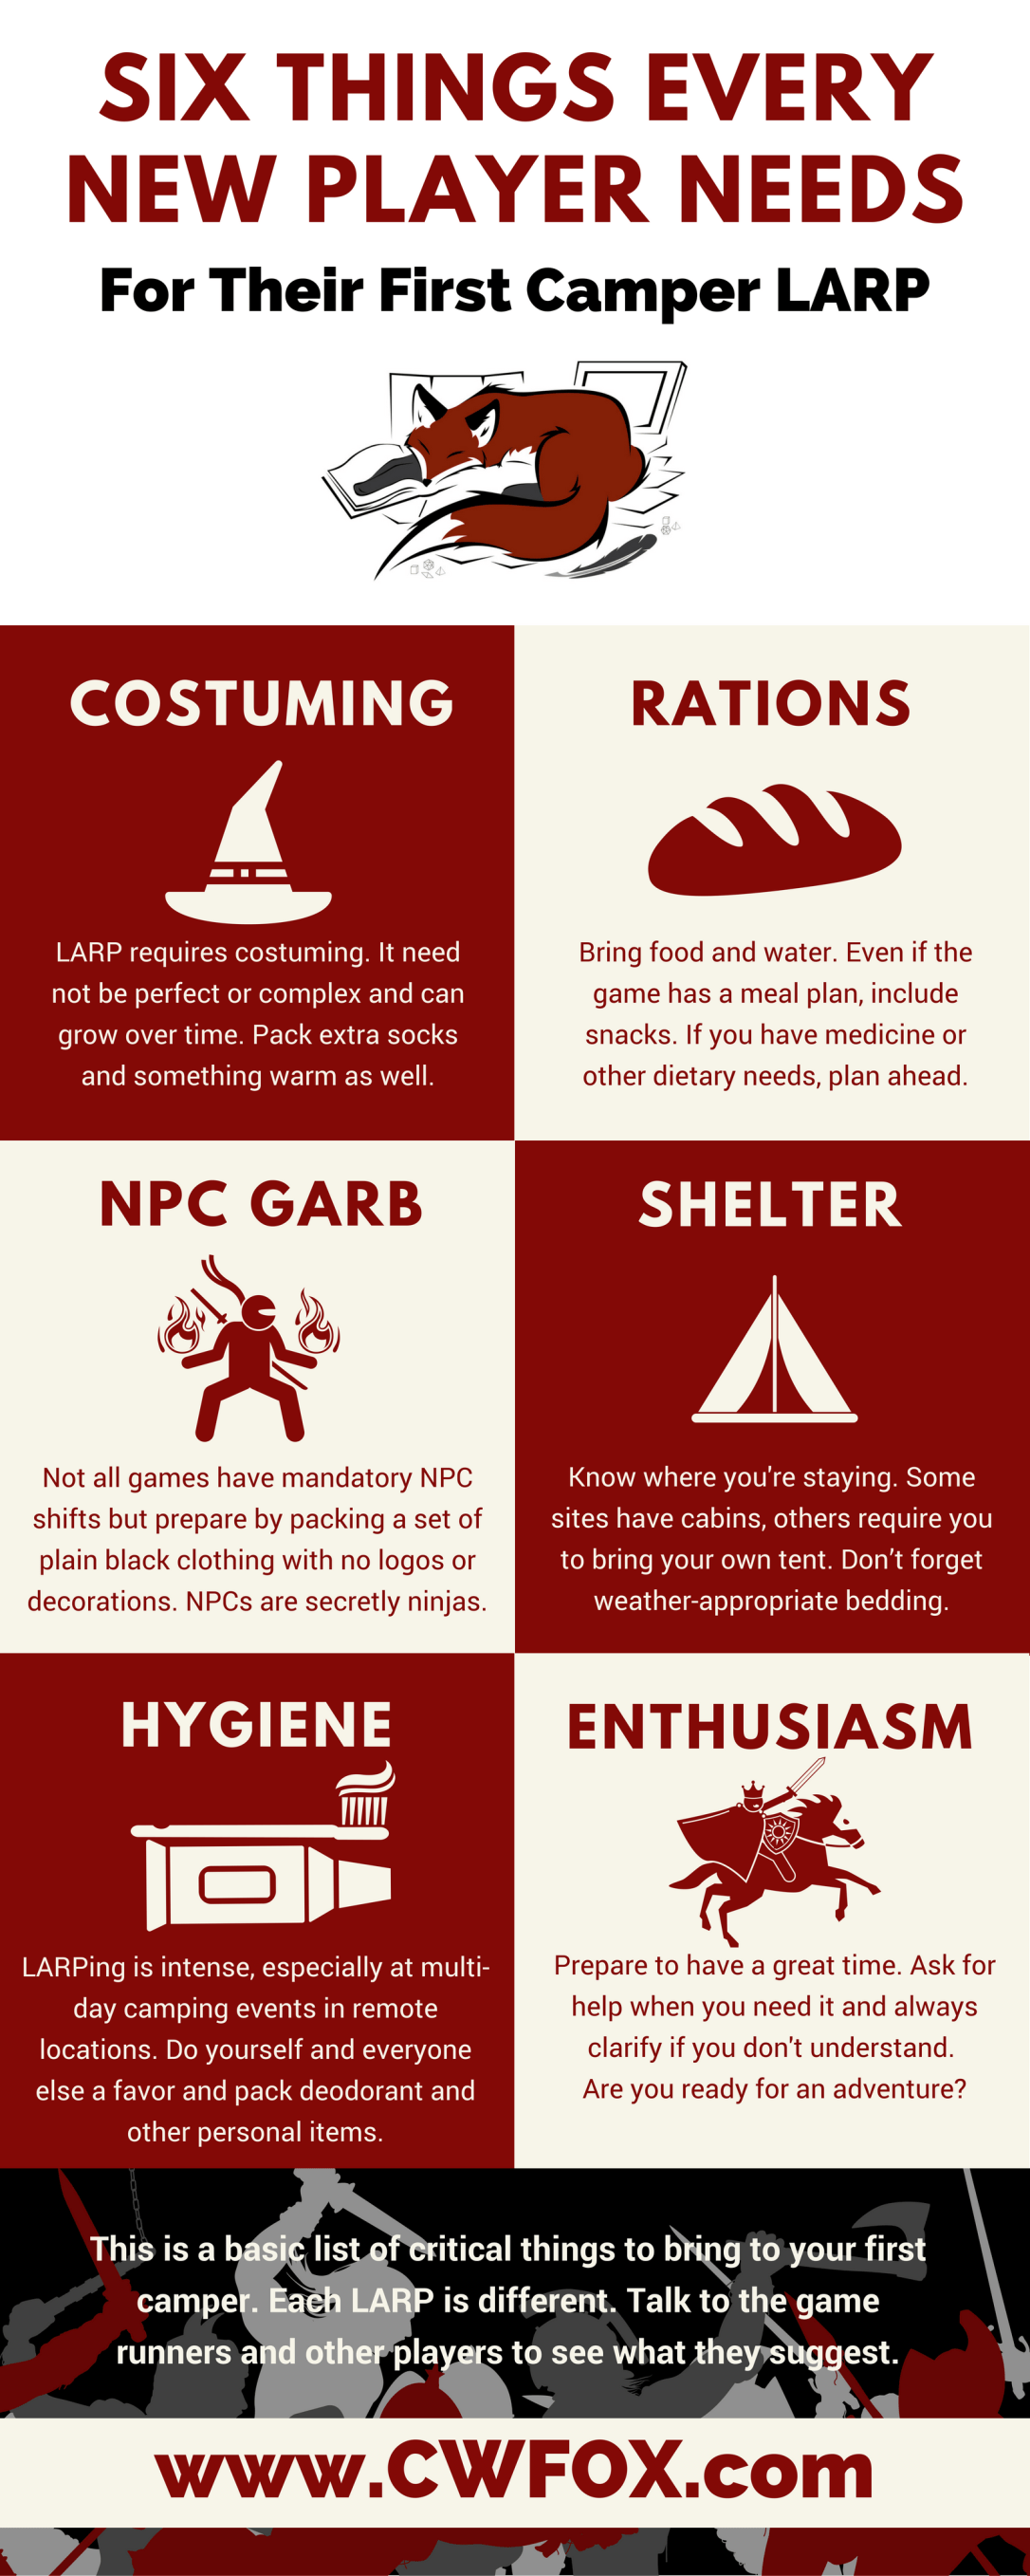 Six Things Every New Player Needs for Their First Camper LARP